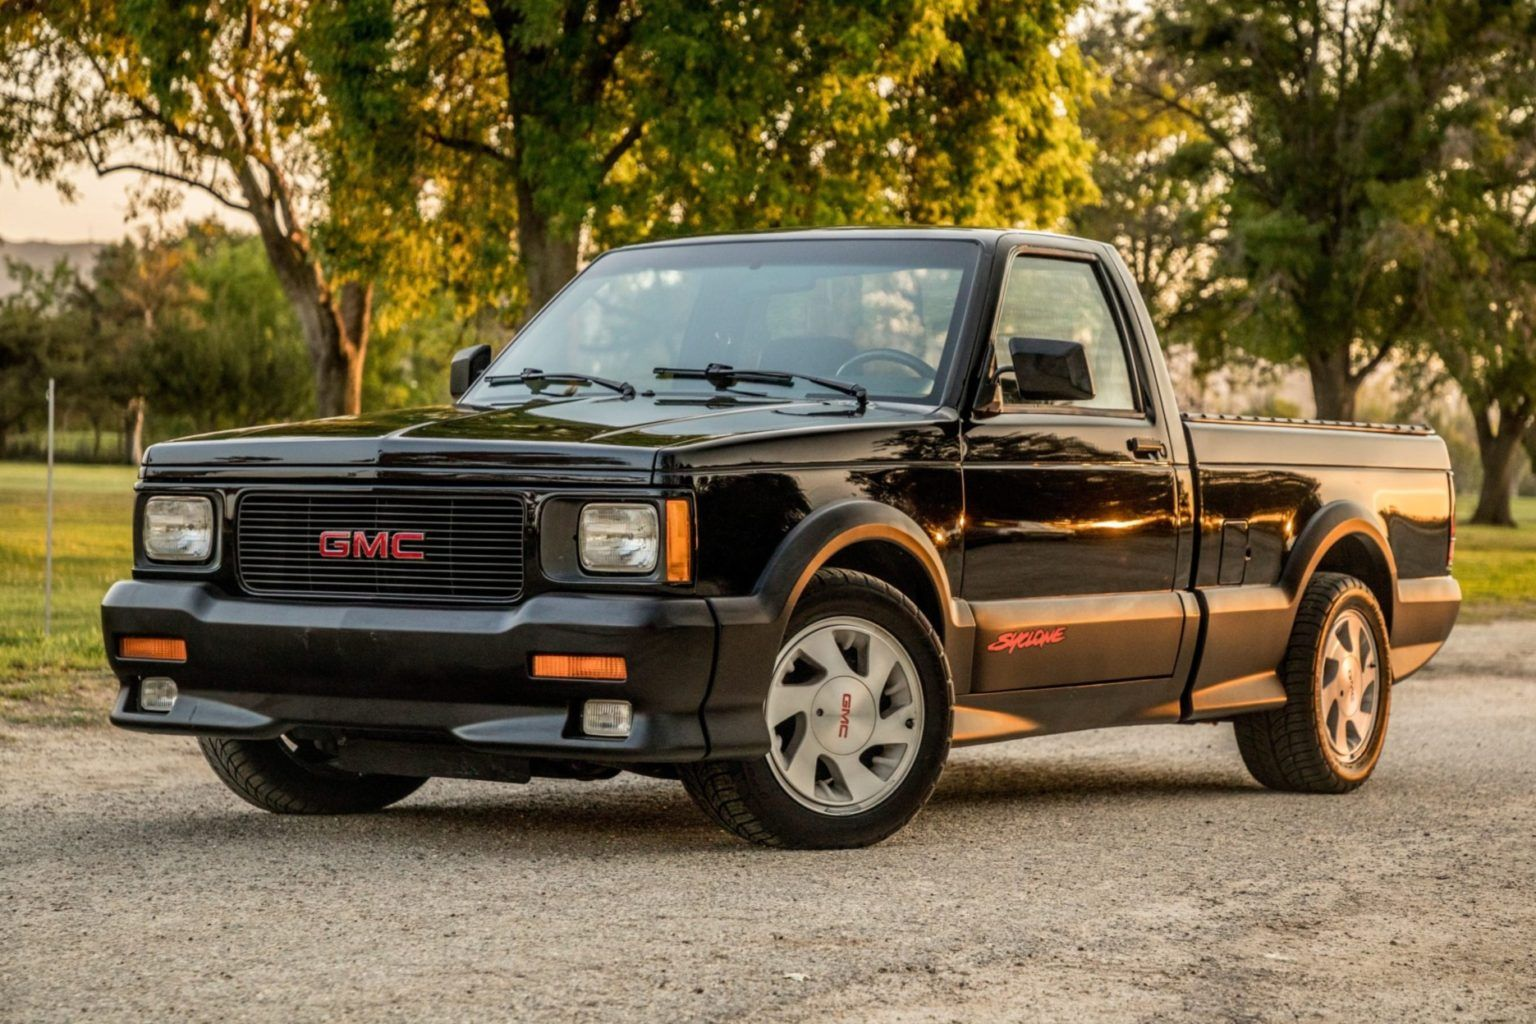 Gmc Syclone Wheel Arch S Raised Larger Rims And Lowered Gmc